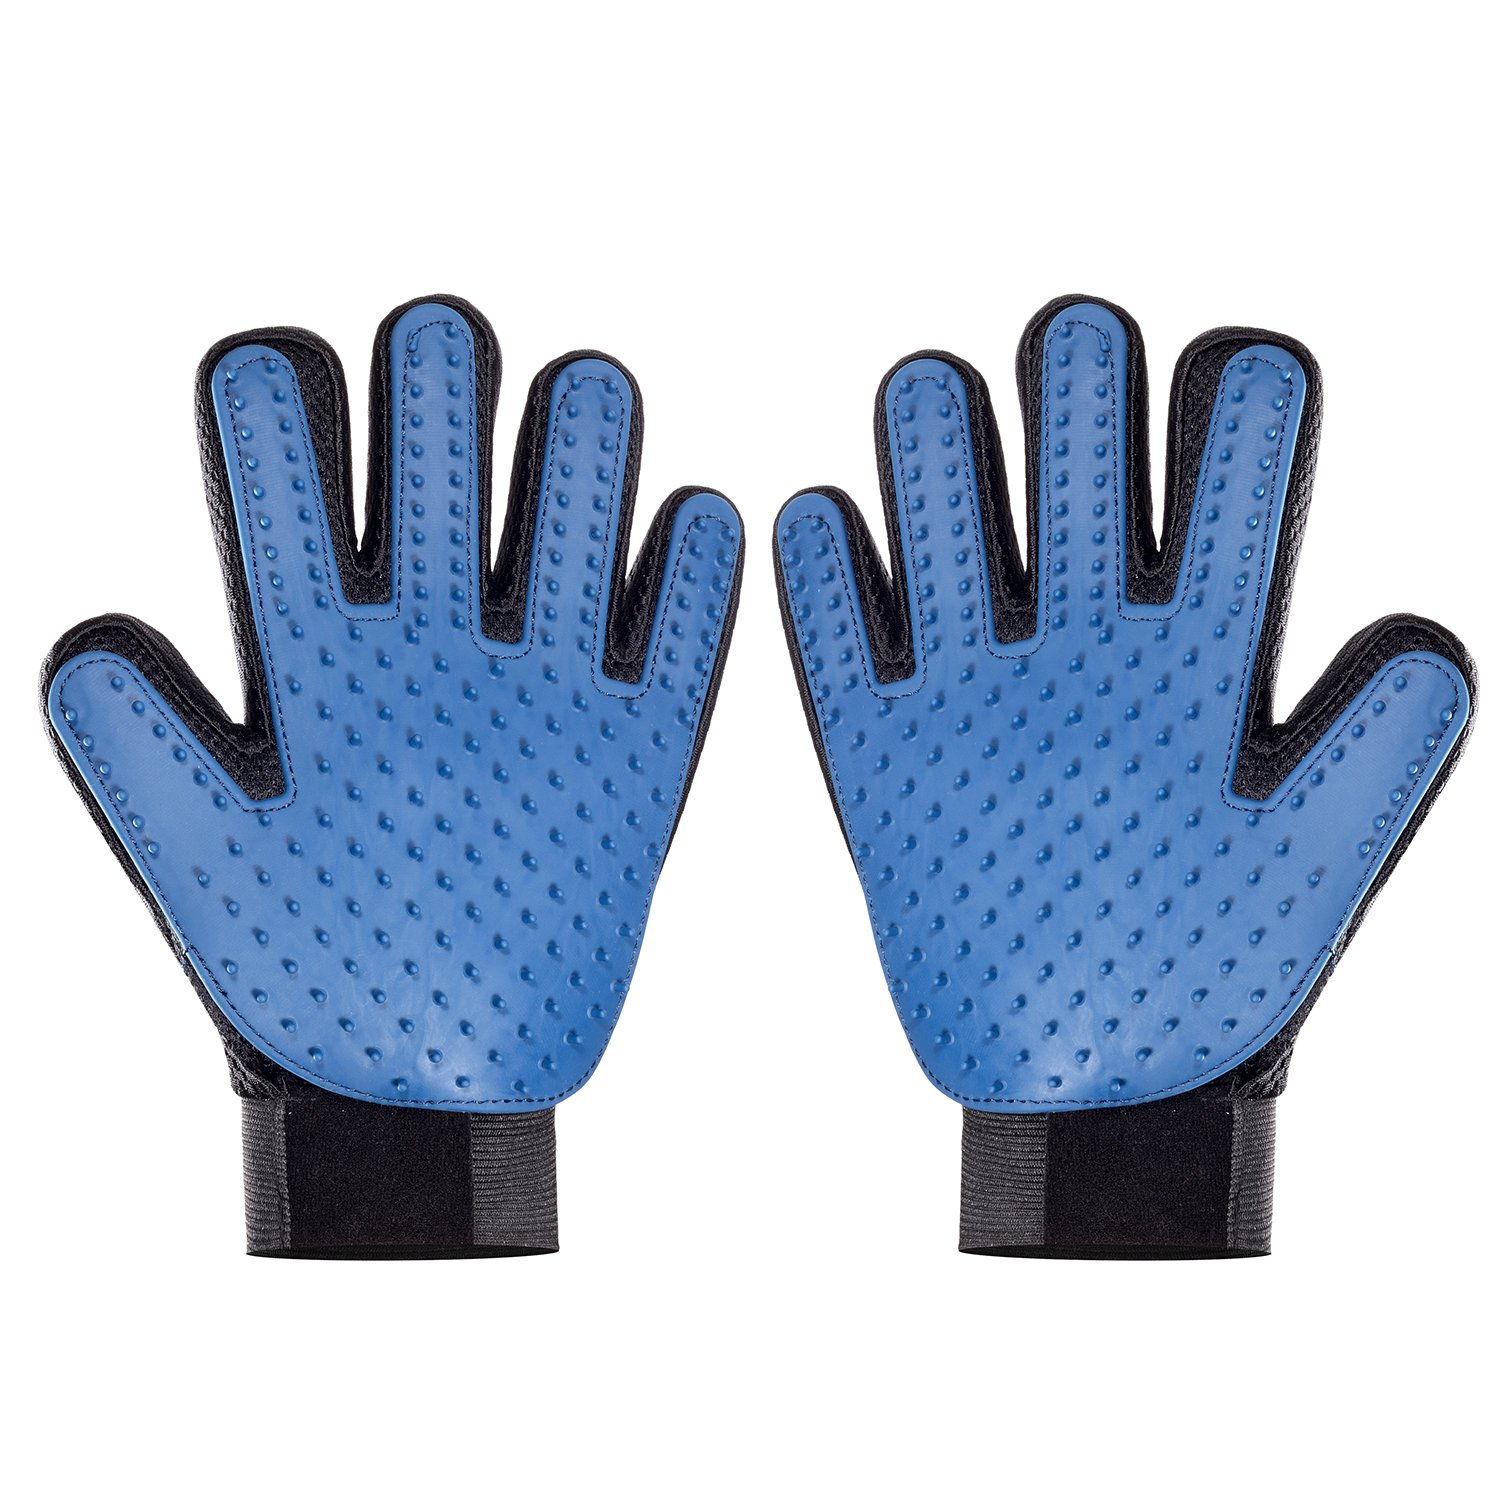 Pet Grooming Glove, Bath Brush and Massage Efficient Dog Hair Remover Mitt Cat Gentle Deshedding Brush Glove, Gentle Massaging Tool with Enhanced Five Finger Design, Perfect for Pets, Blue, 1 Pair